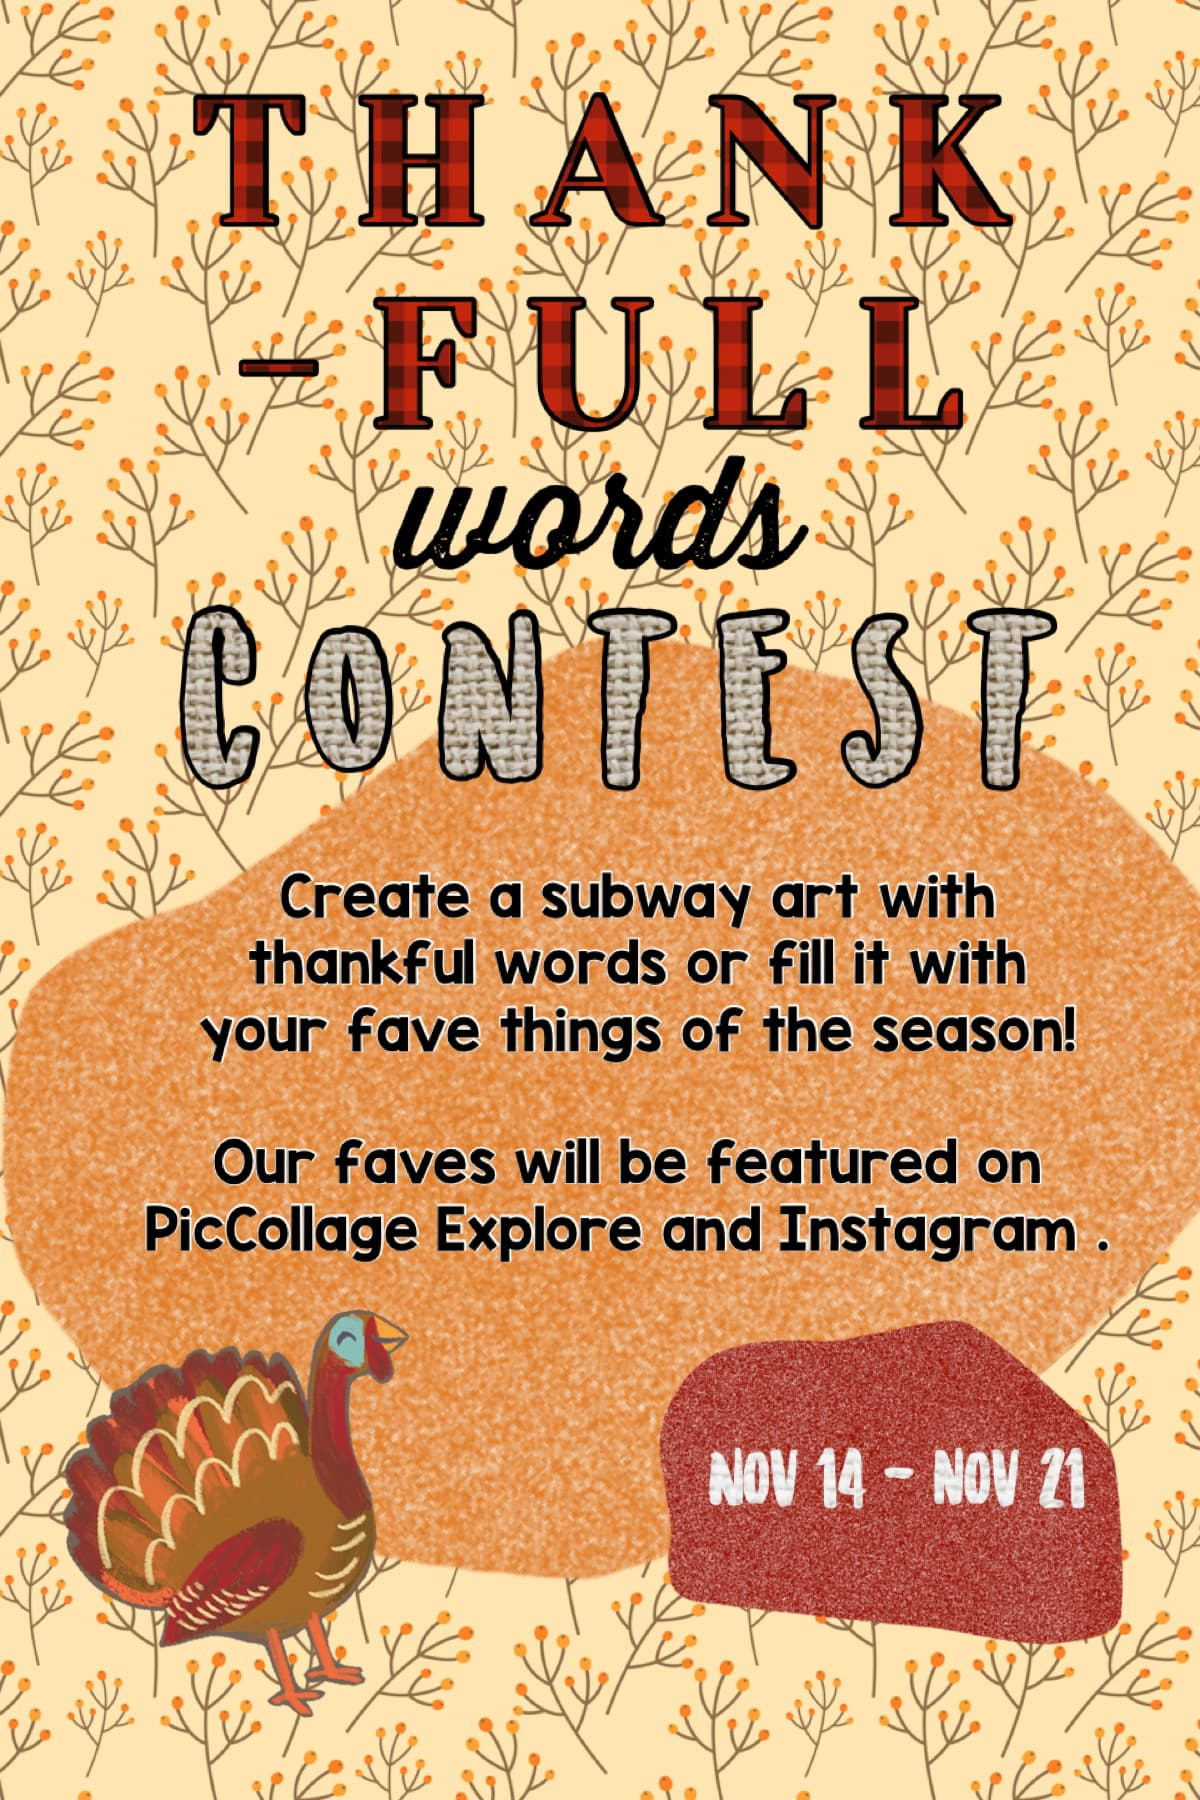 🦃 Thanksgiving contest is live! Deadline is November 21 🍁